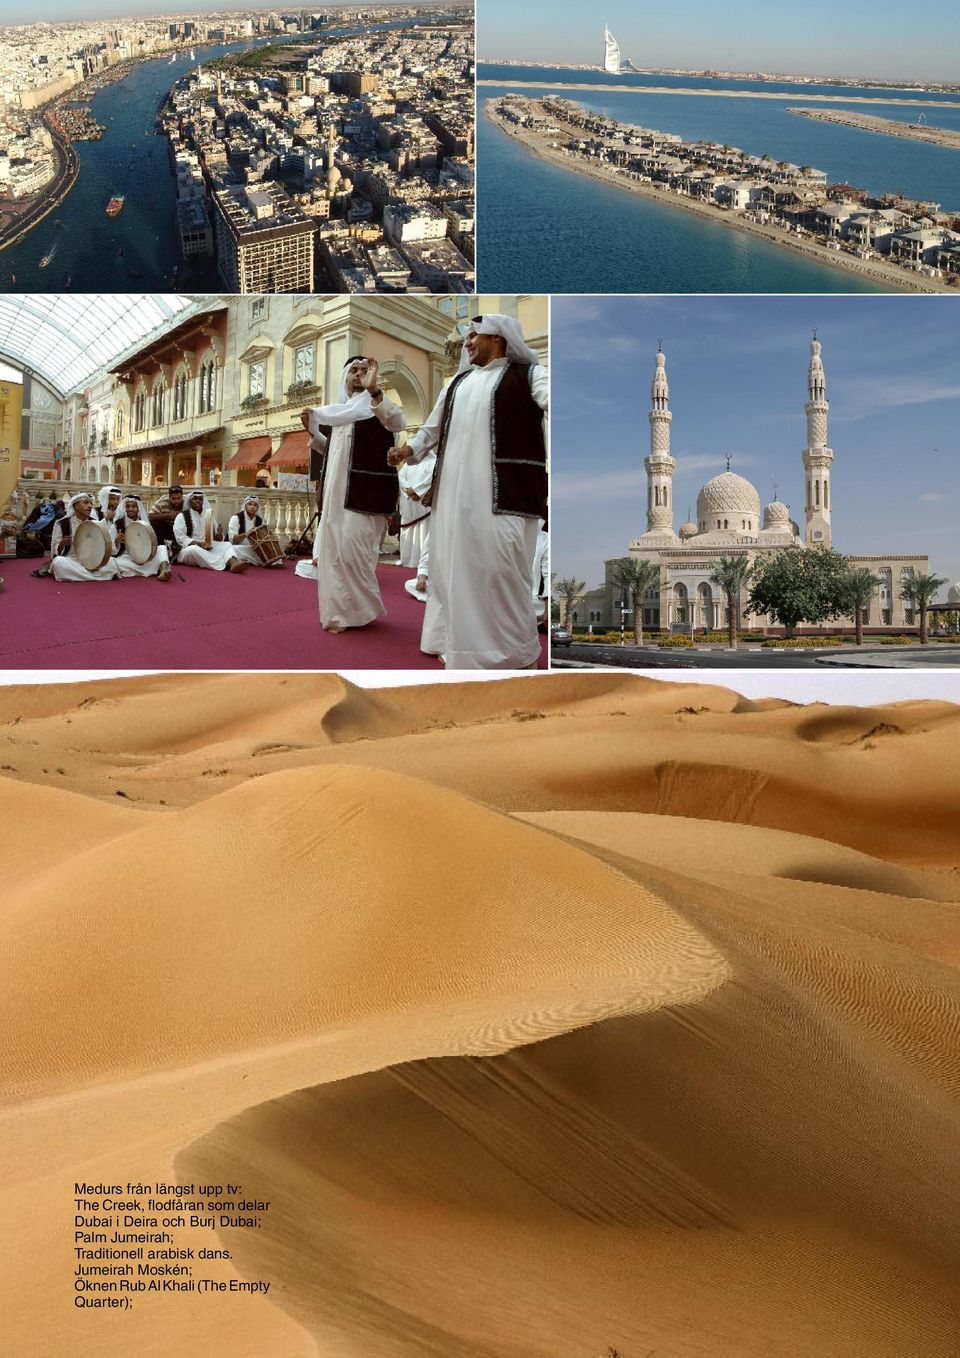 Jumeirah; Traditionell arabisk dans.